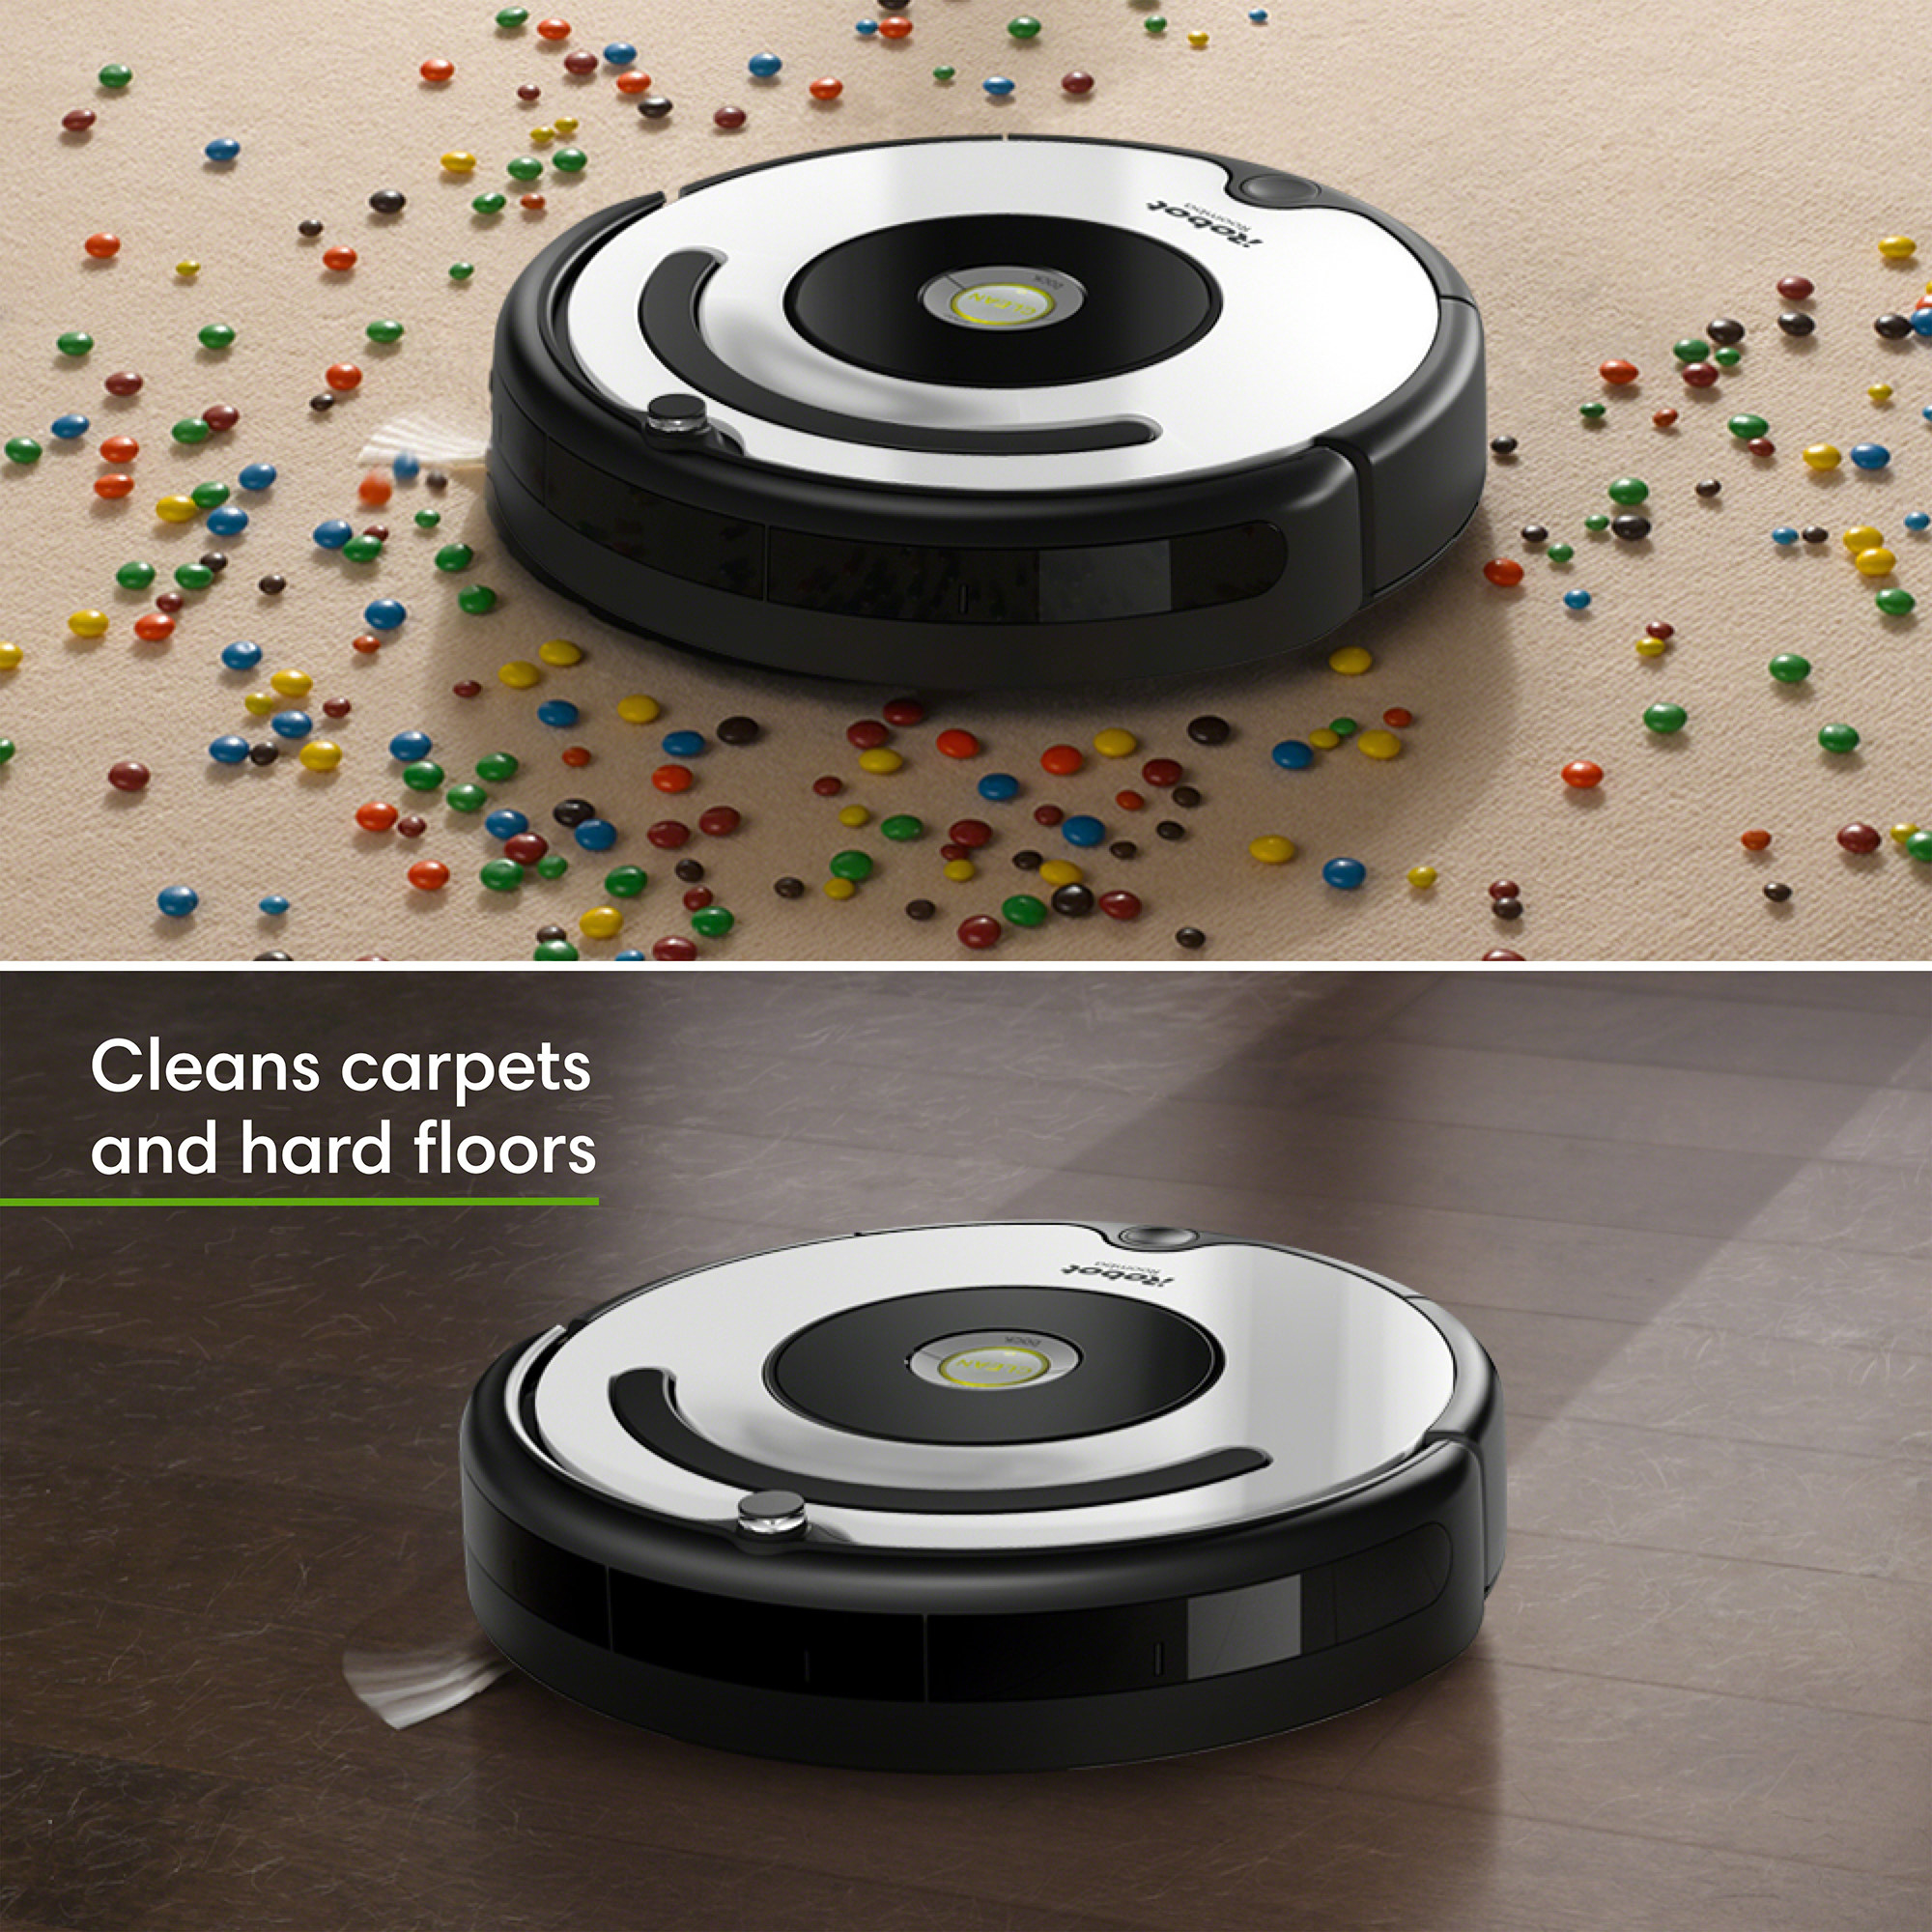 The Roomba vacuuming both a carpet and hardwood floor